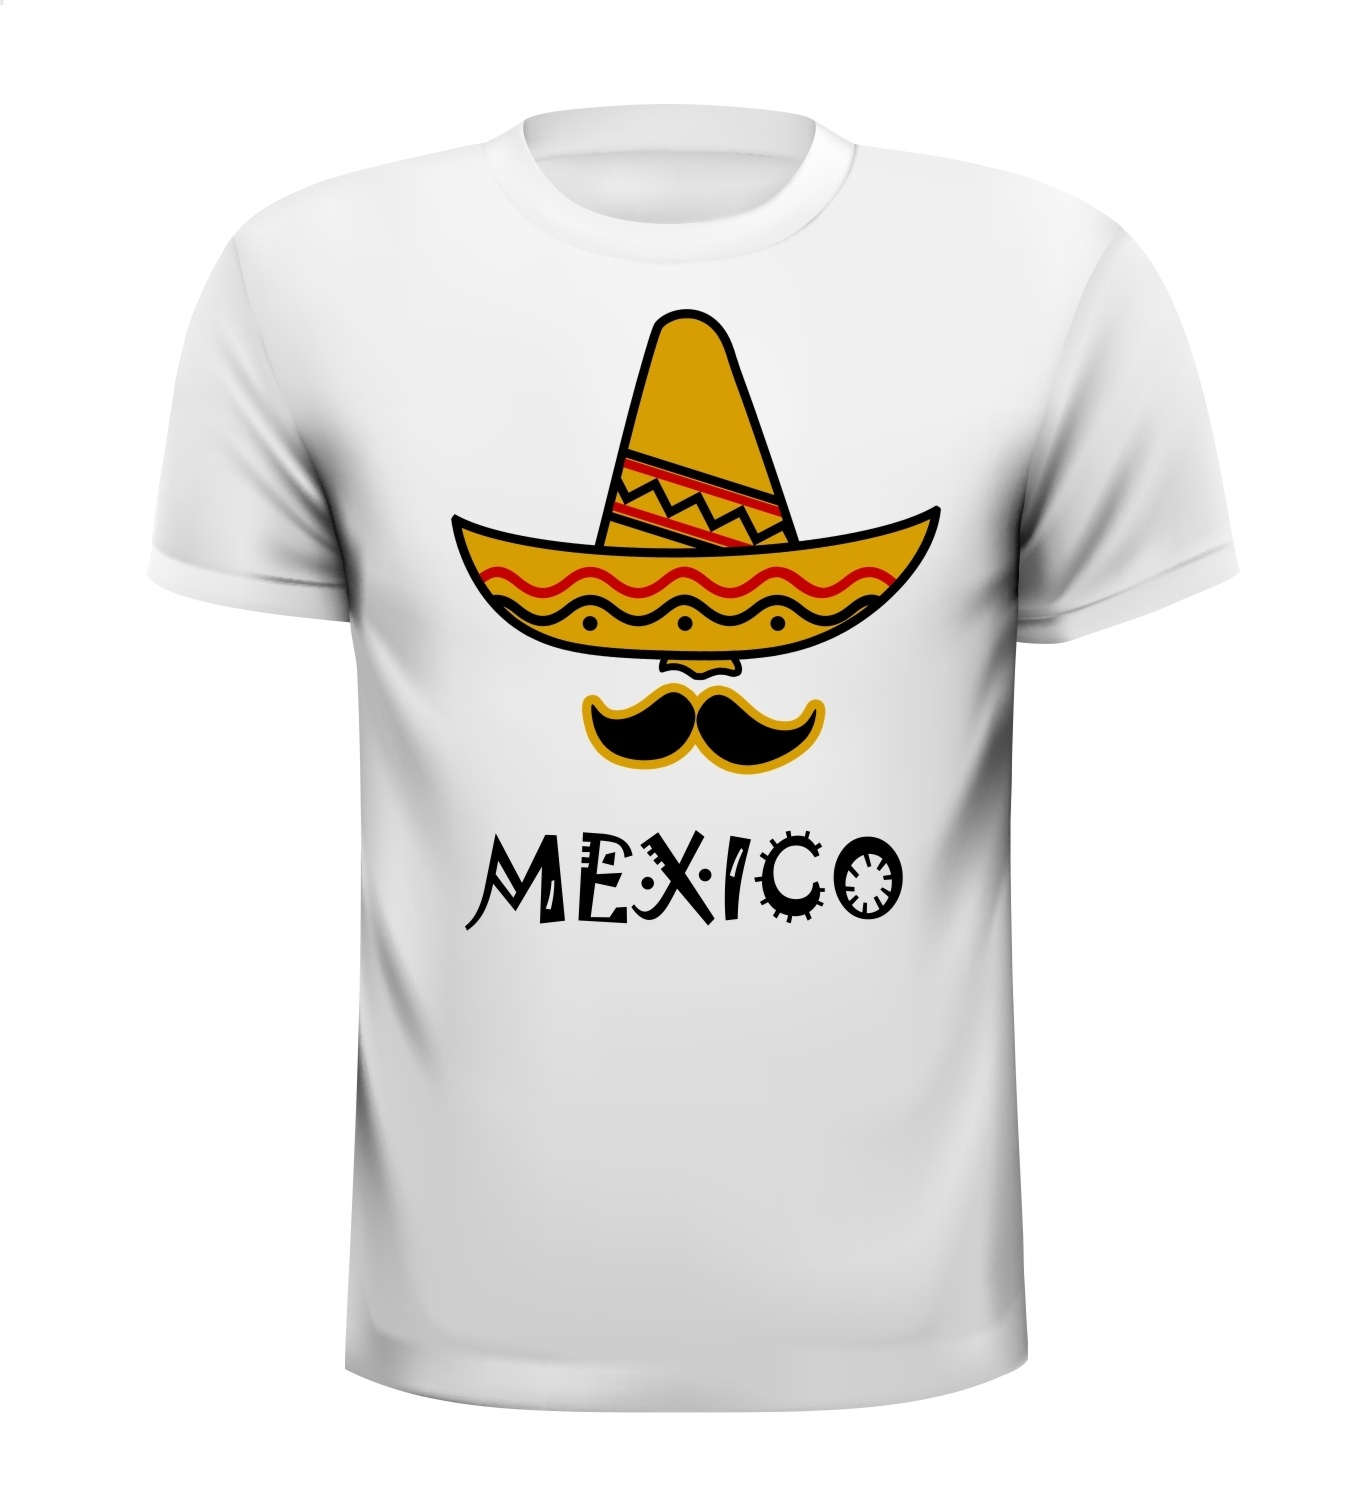 Sombrero Mexico shirt